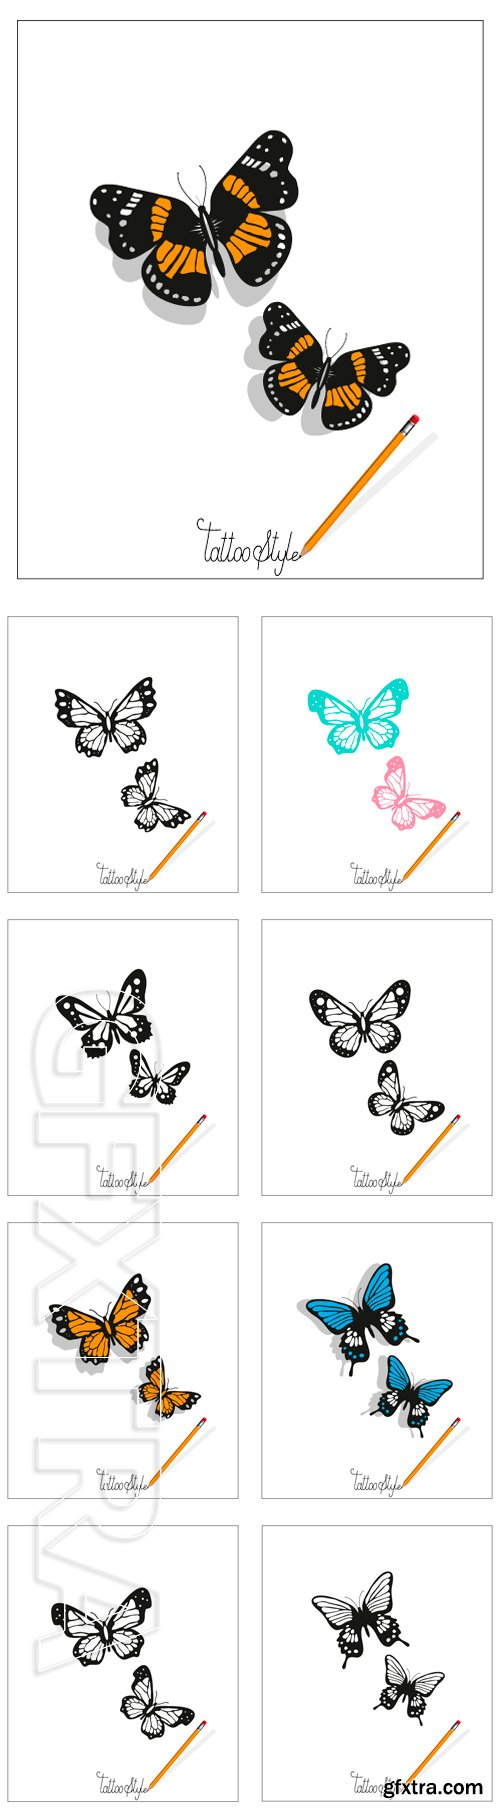 Stock Vectors - Butterfly tattoo